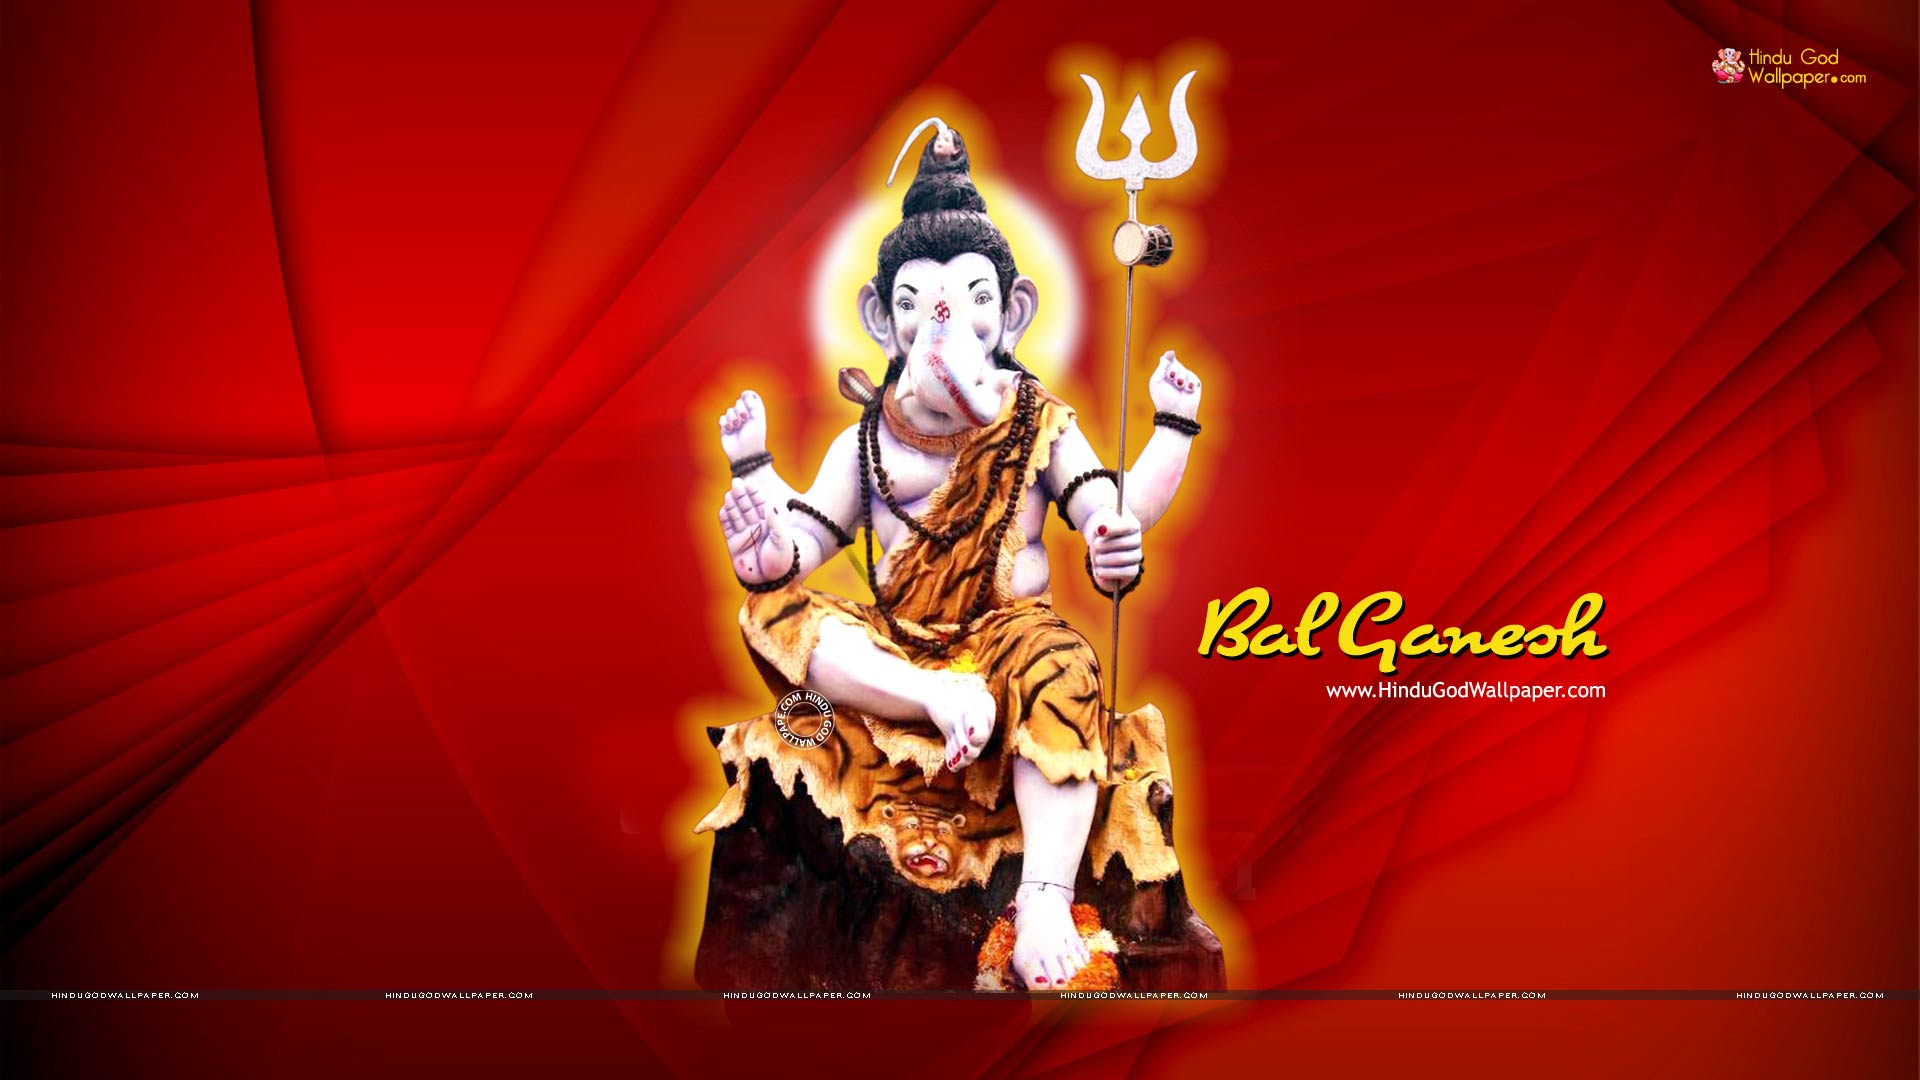 bal ganesh wallpapers, hd images, photos, pictures free download